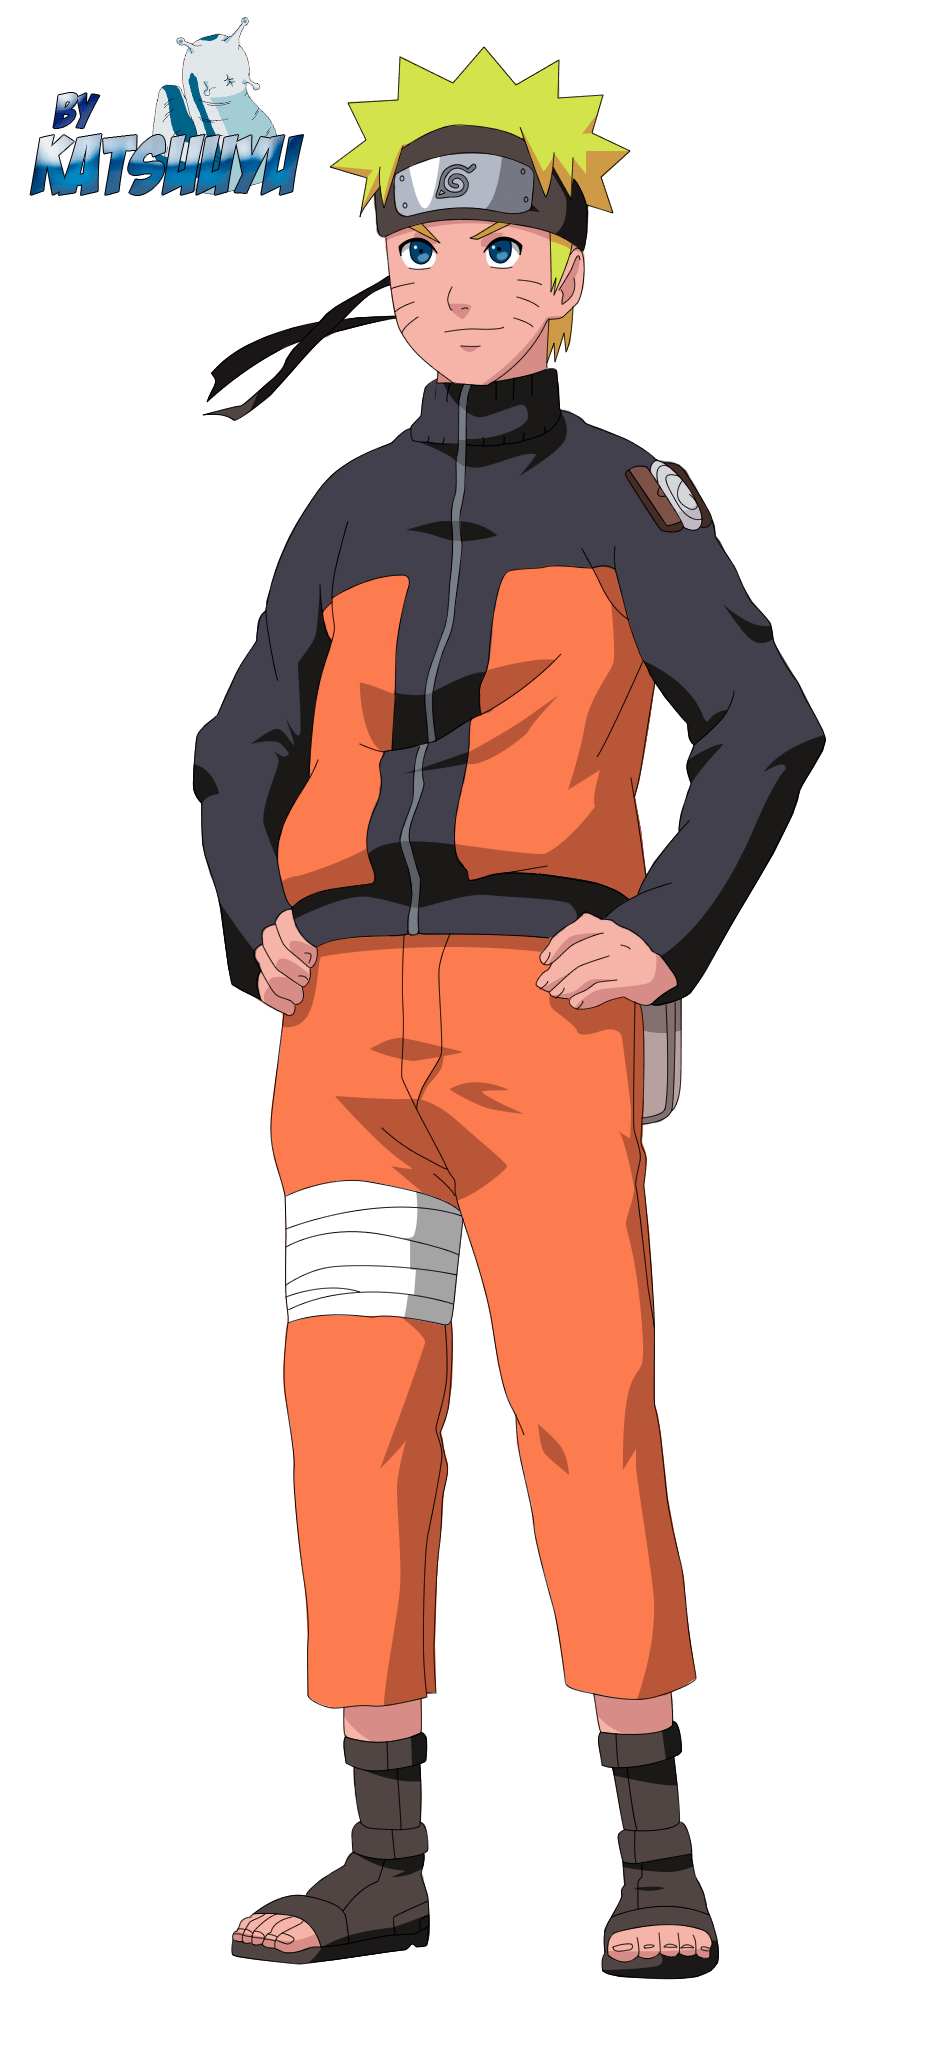 naruto uzumaki full body anime wallpaper naruto uzumaki full body 936 2072